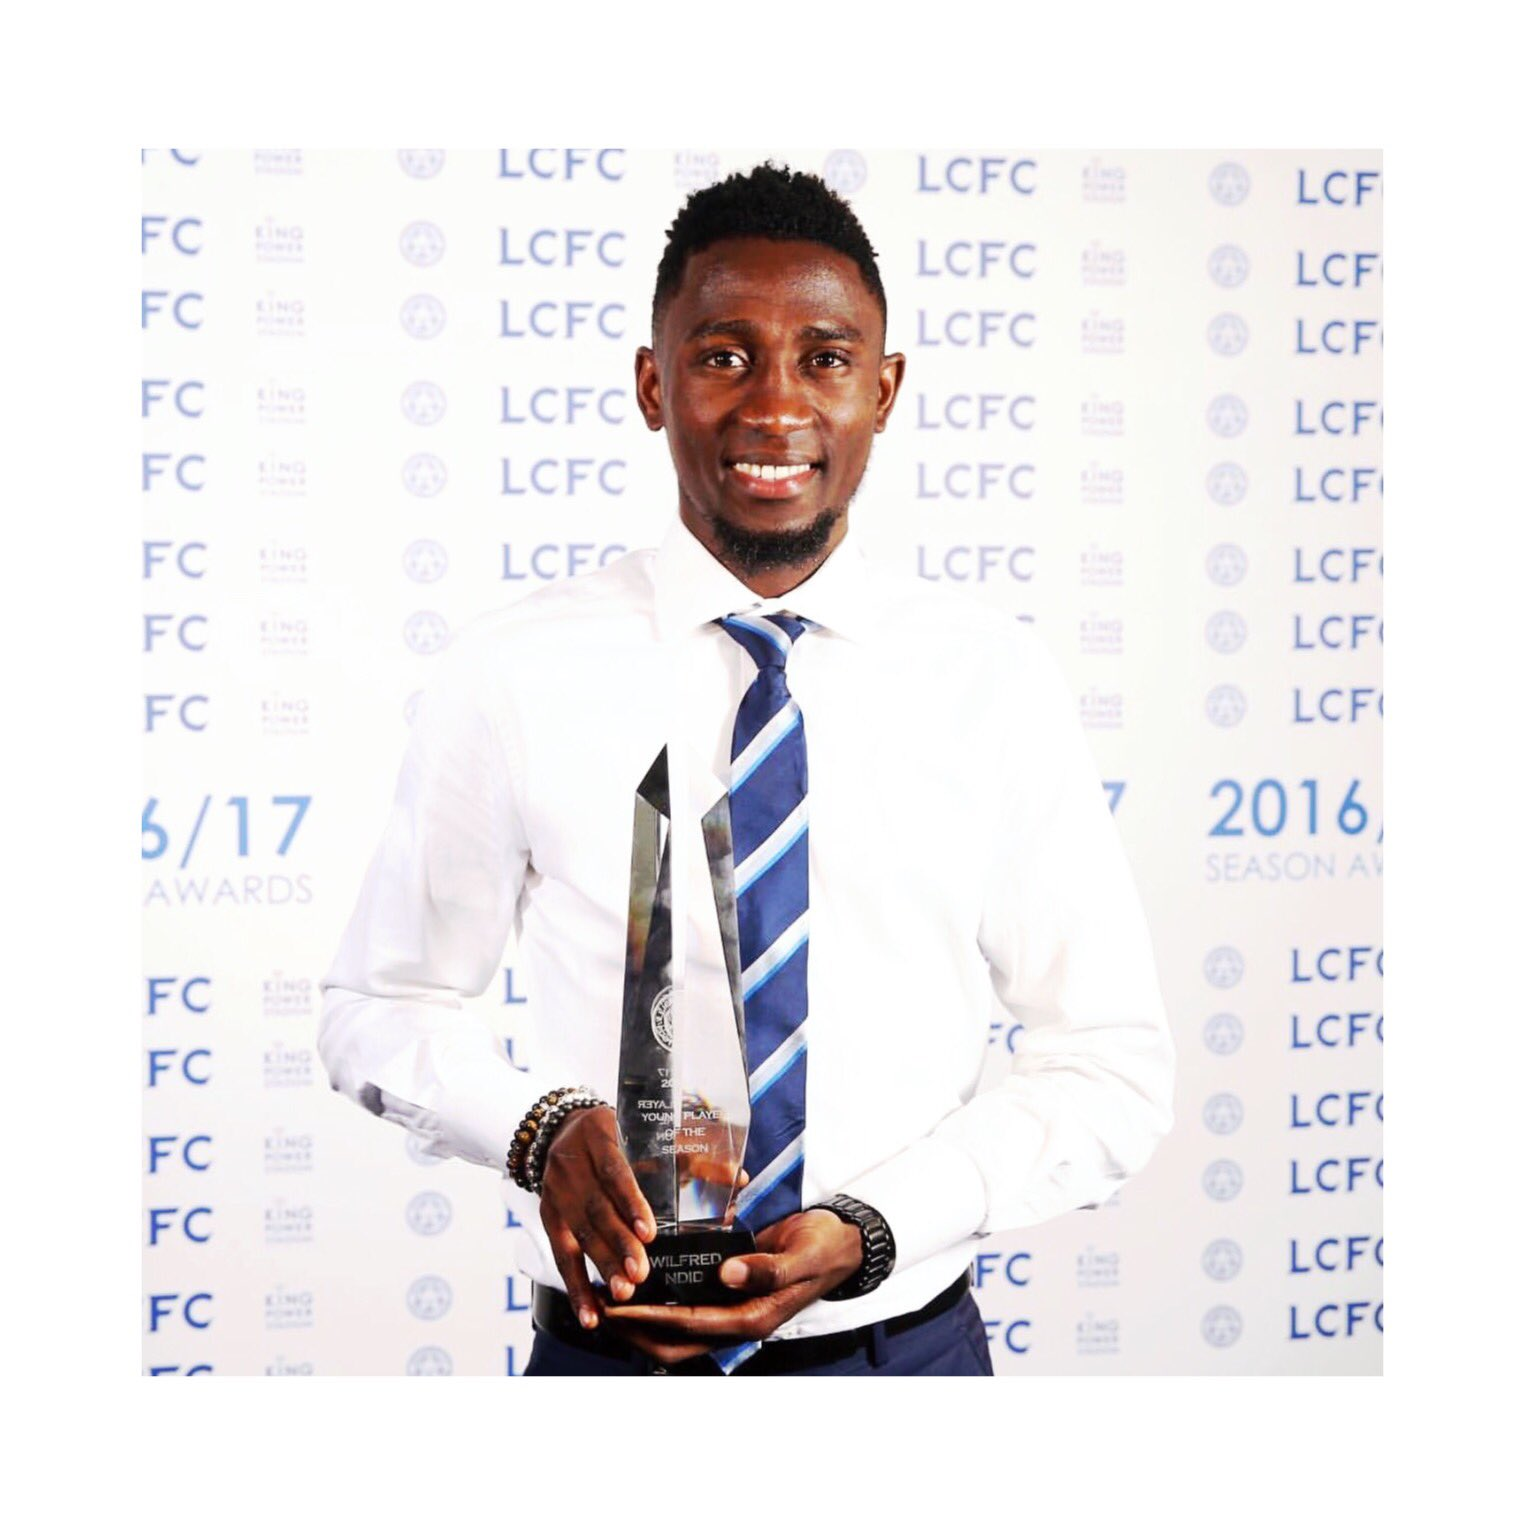 Wilfred Ndidi wins Leicester City's Young Player of the Year award.